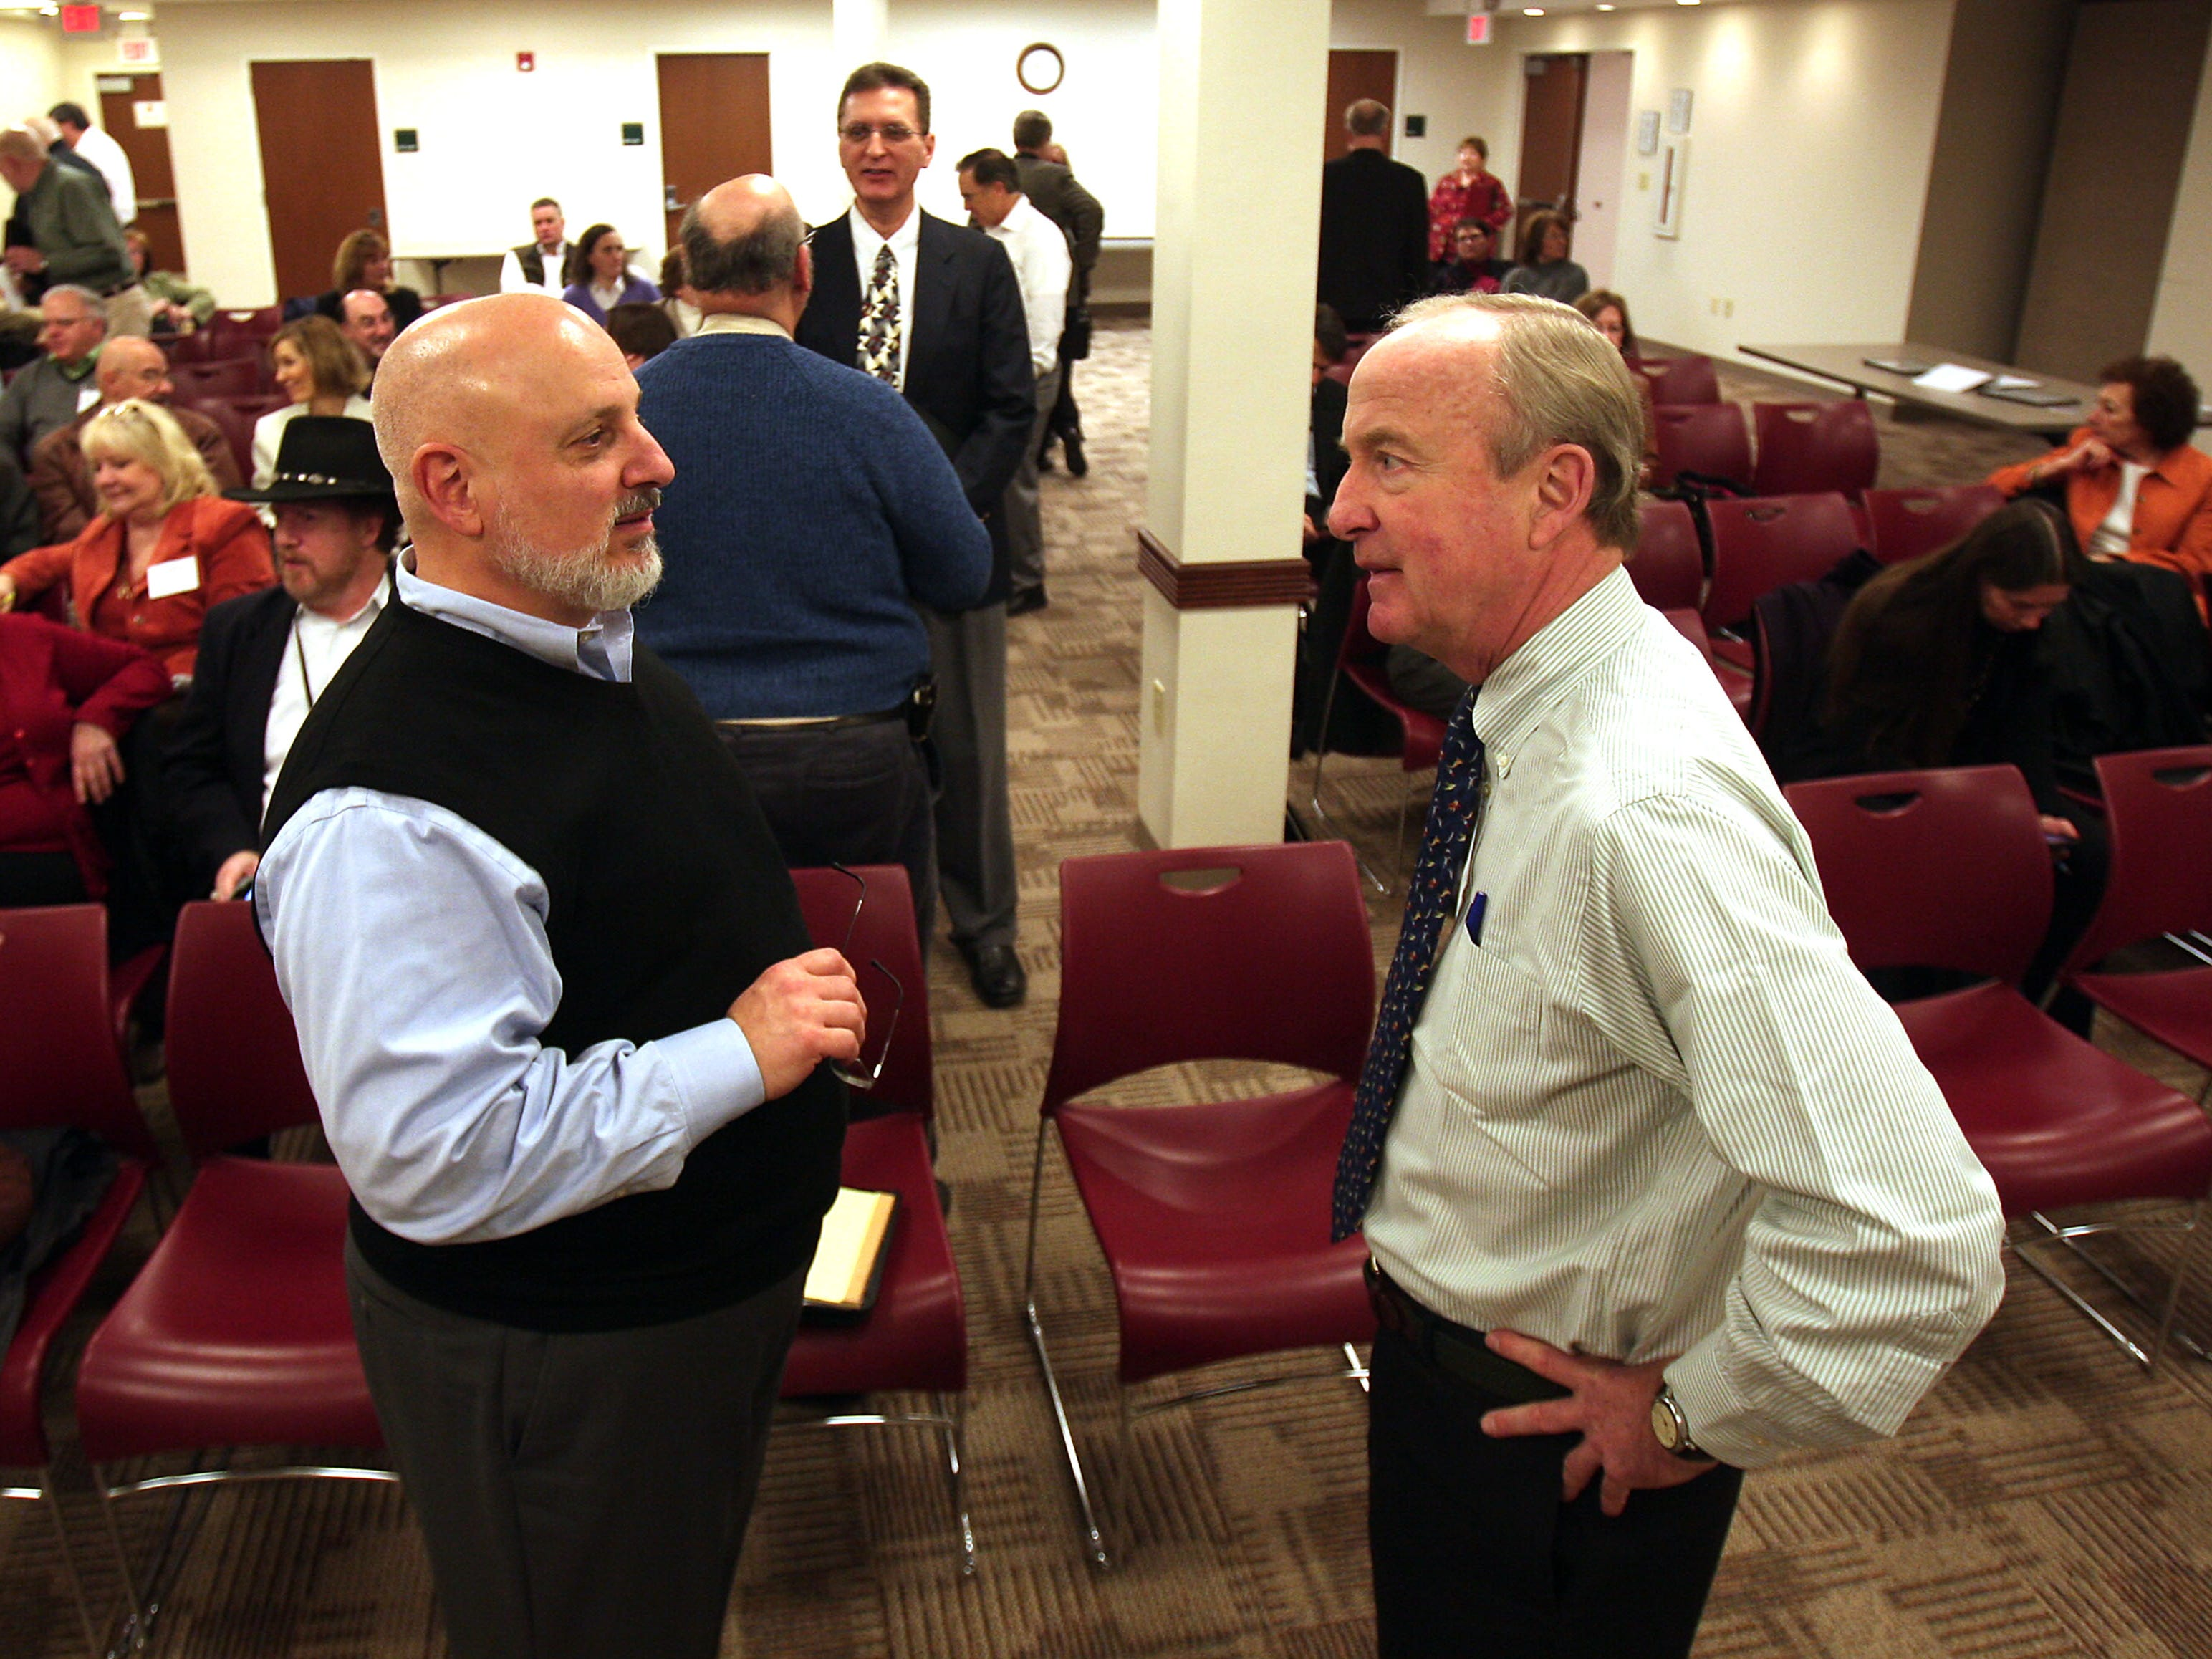 Glenn Nahass of GNPC LLC in Pompton Plains (left) talks with Rep. Rodney Frelinghuysen, who met with members of the Professional Support Group of Morris County at the Parsippany Main Public Library.